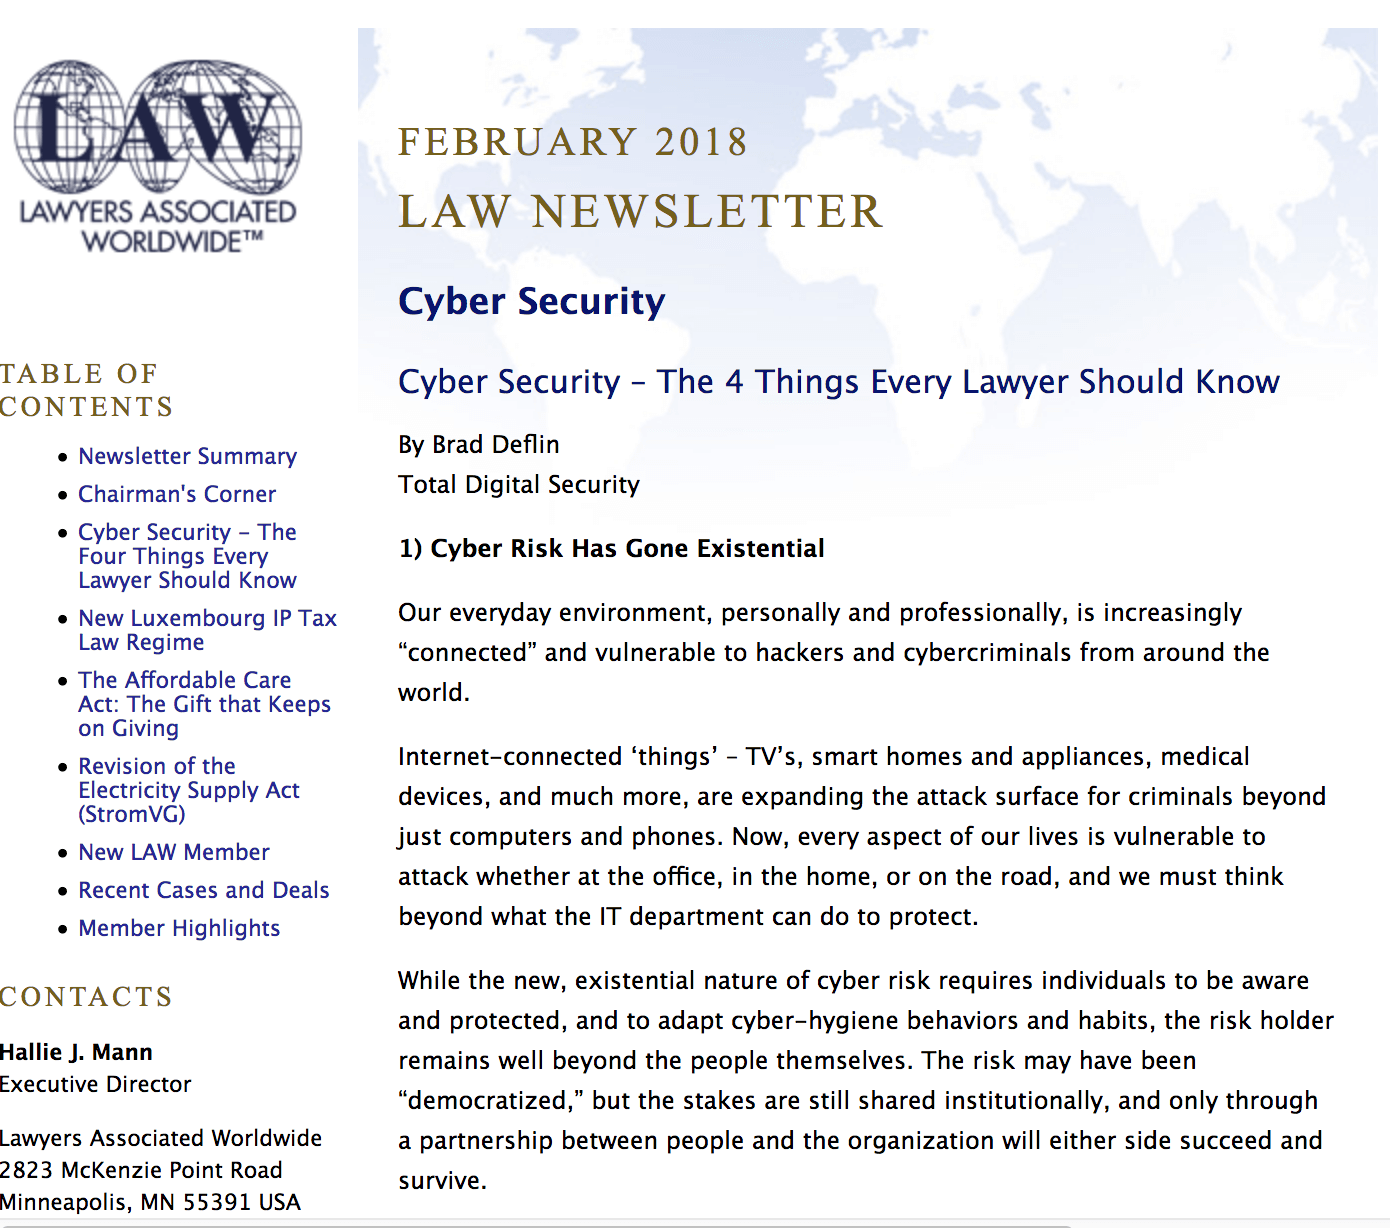 LAW Feb 2018 Newsletter.png